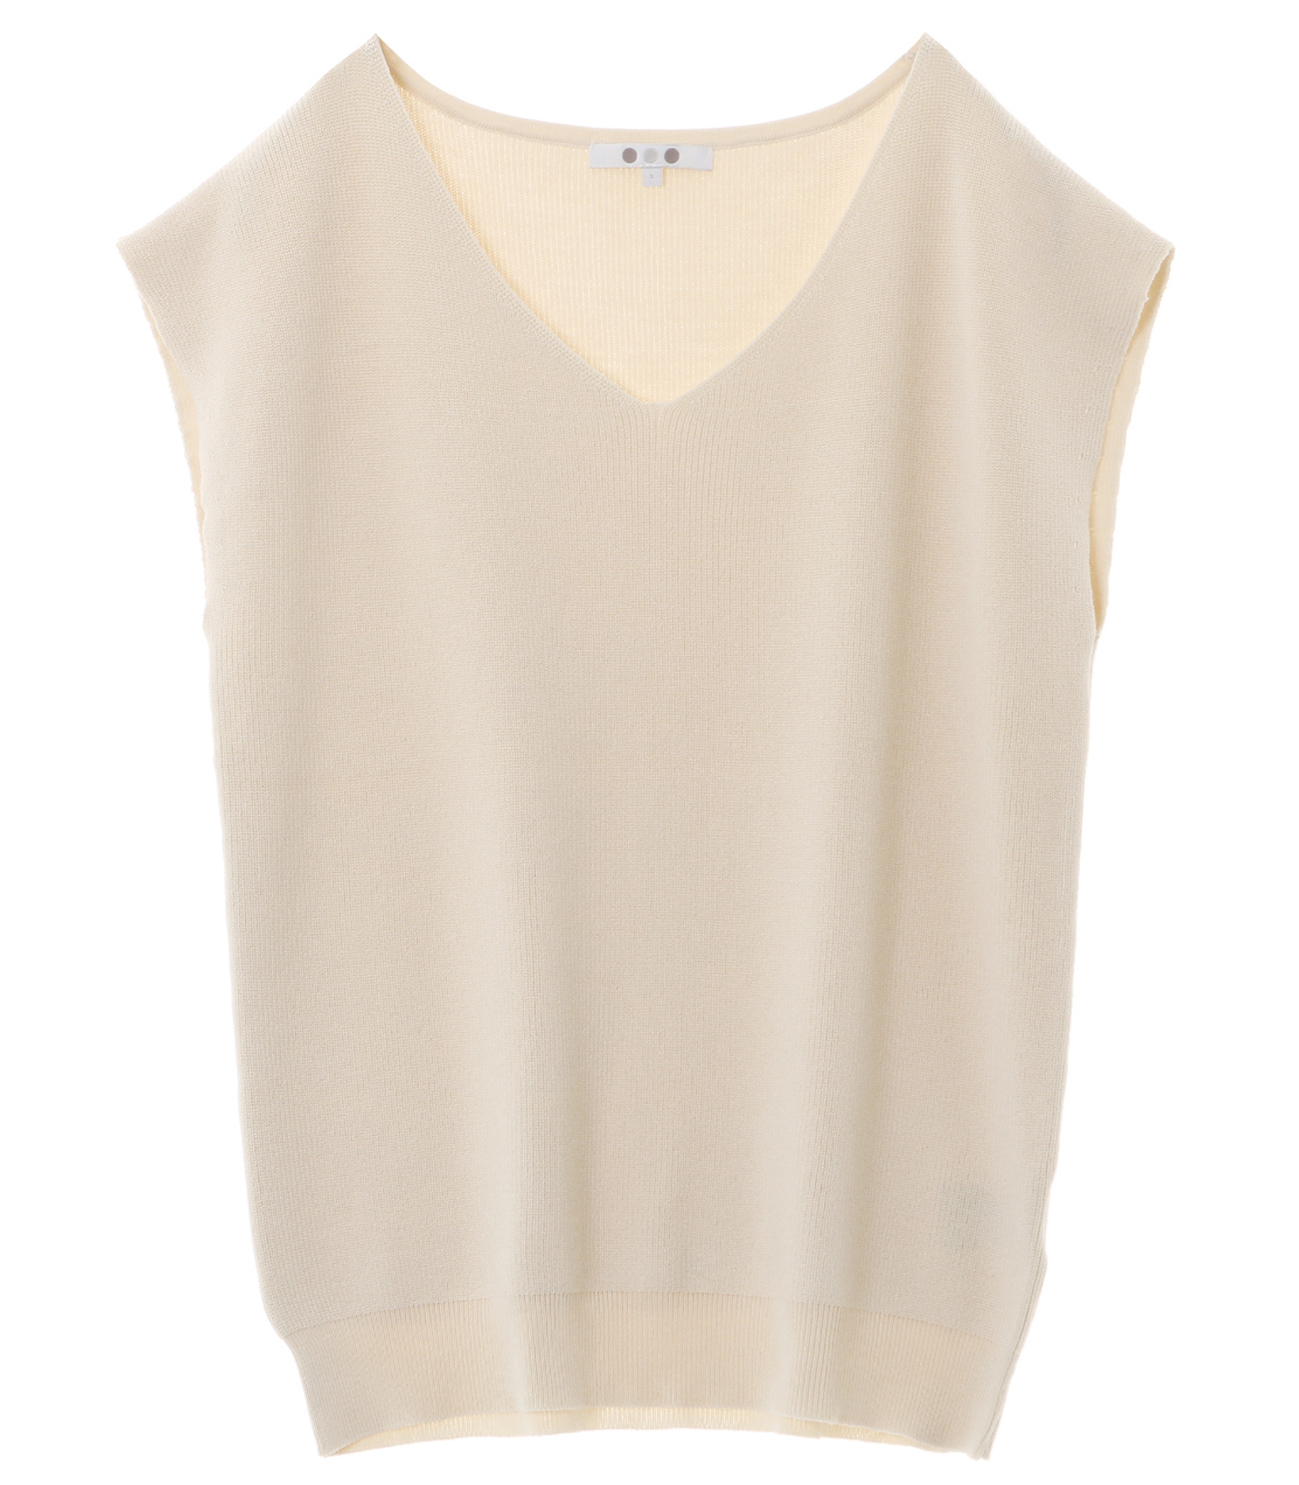 outlast sweater sleeveless vneck 詳細画像 cream 1